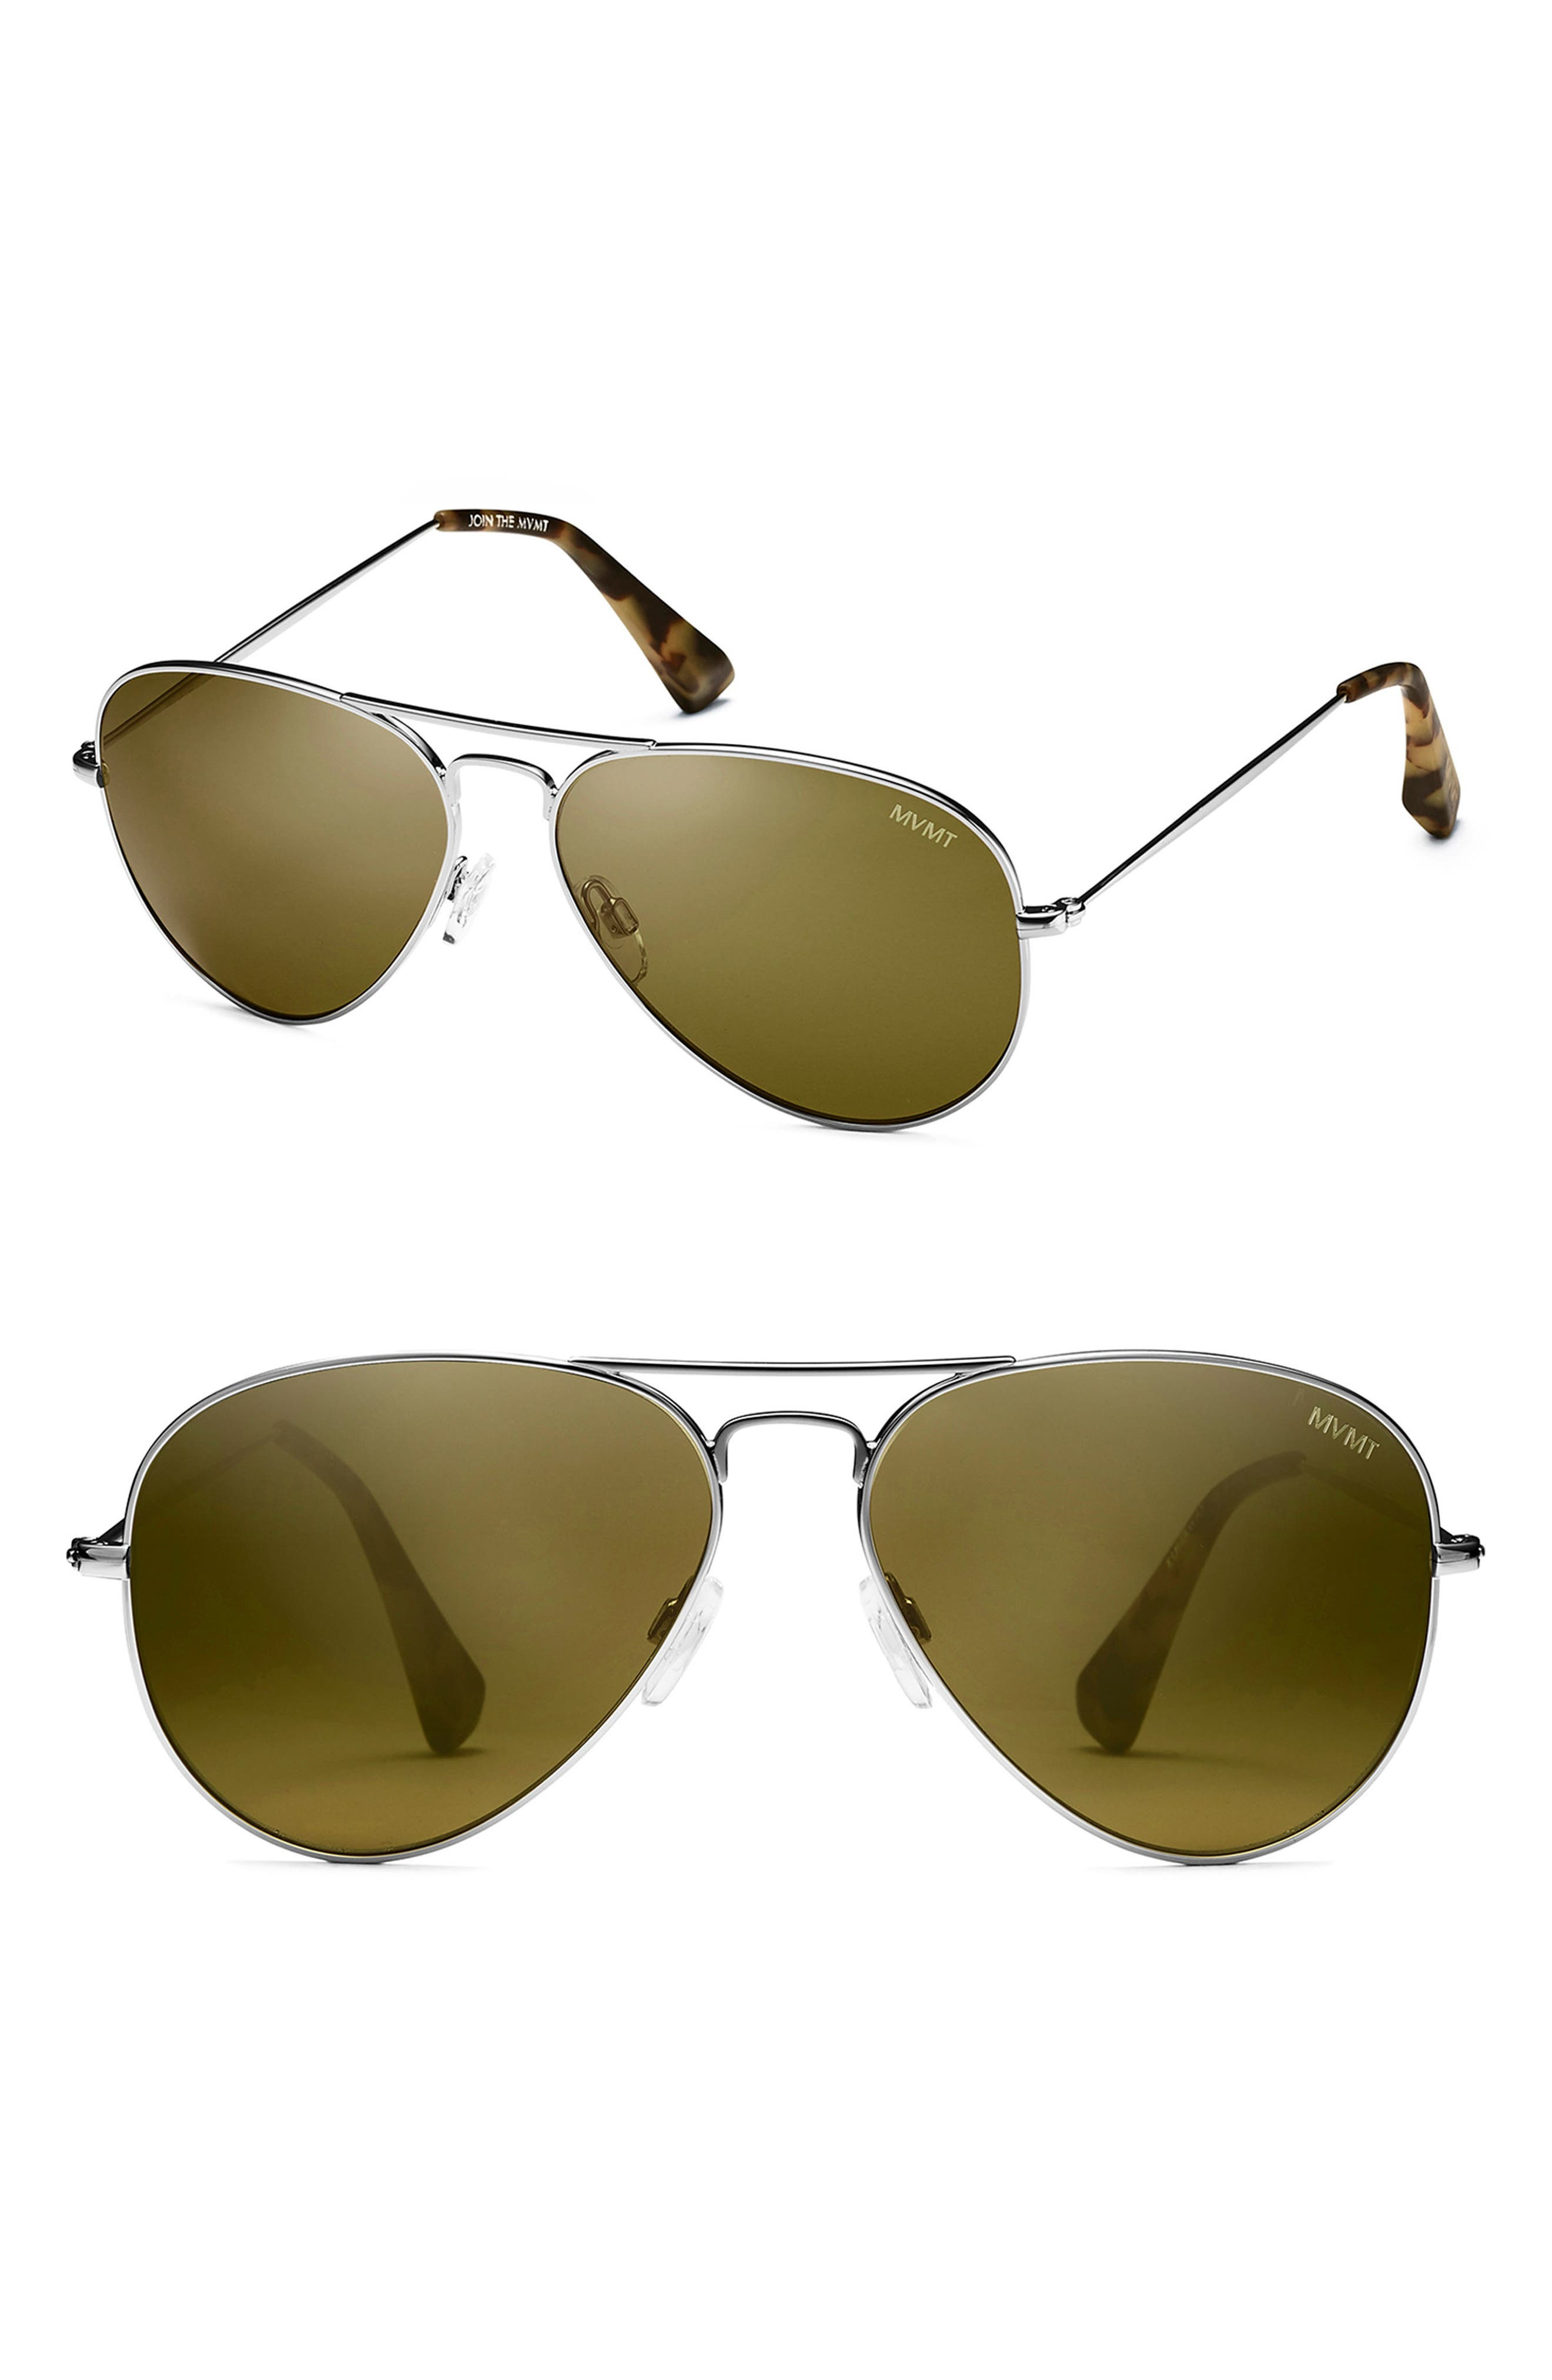 MVMT RUNWAY 60MM POLARIZED AVIATOR SUNGLASSES - BRUSHED SILVER